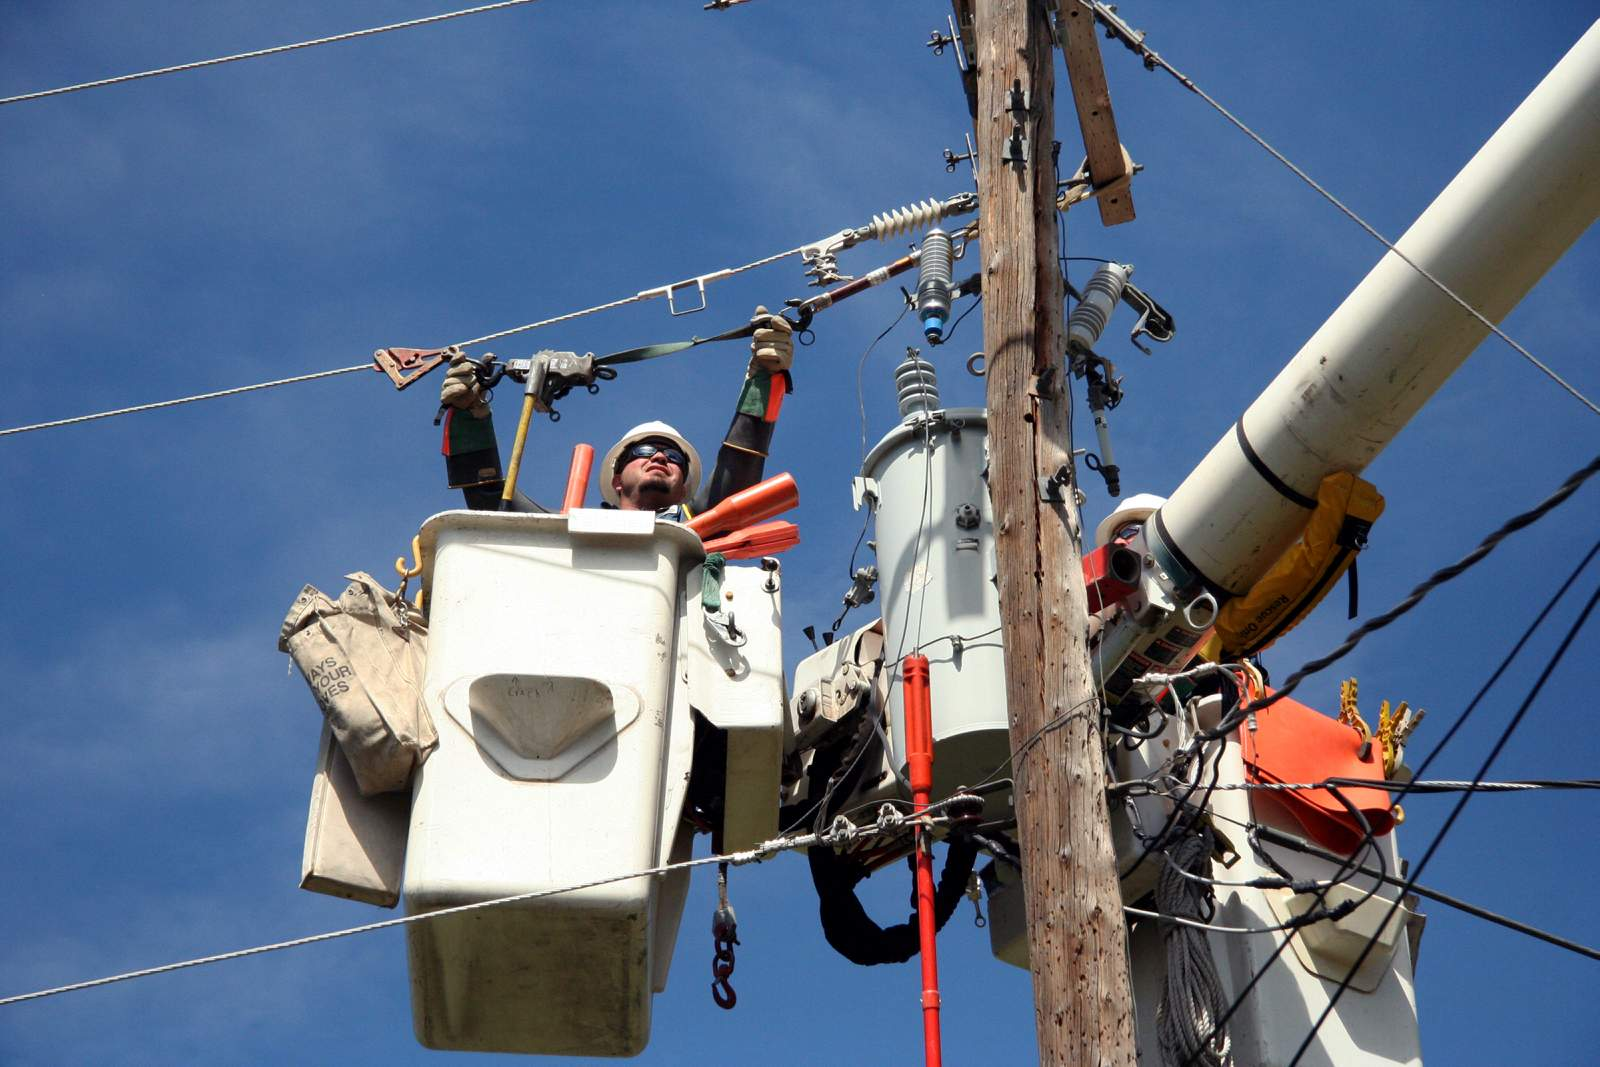 LPEA candidates weigh renewable energy vs. keeping rates low